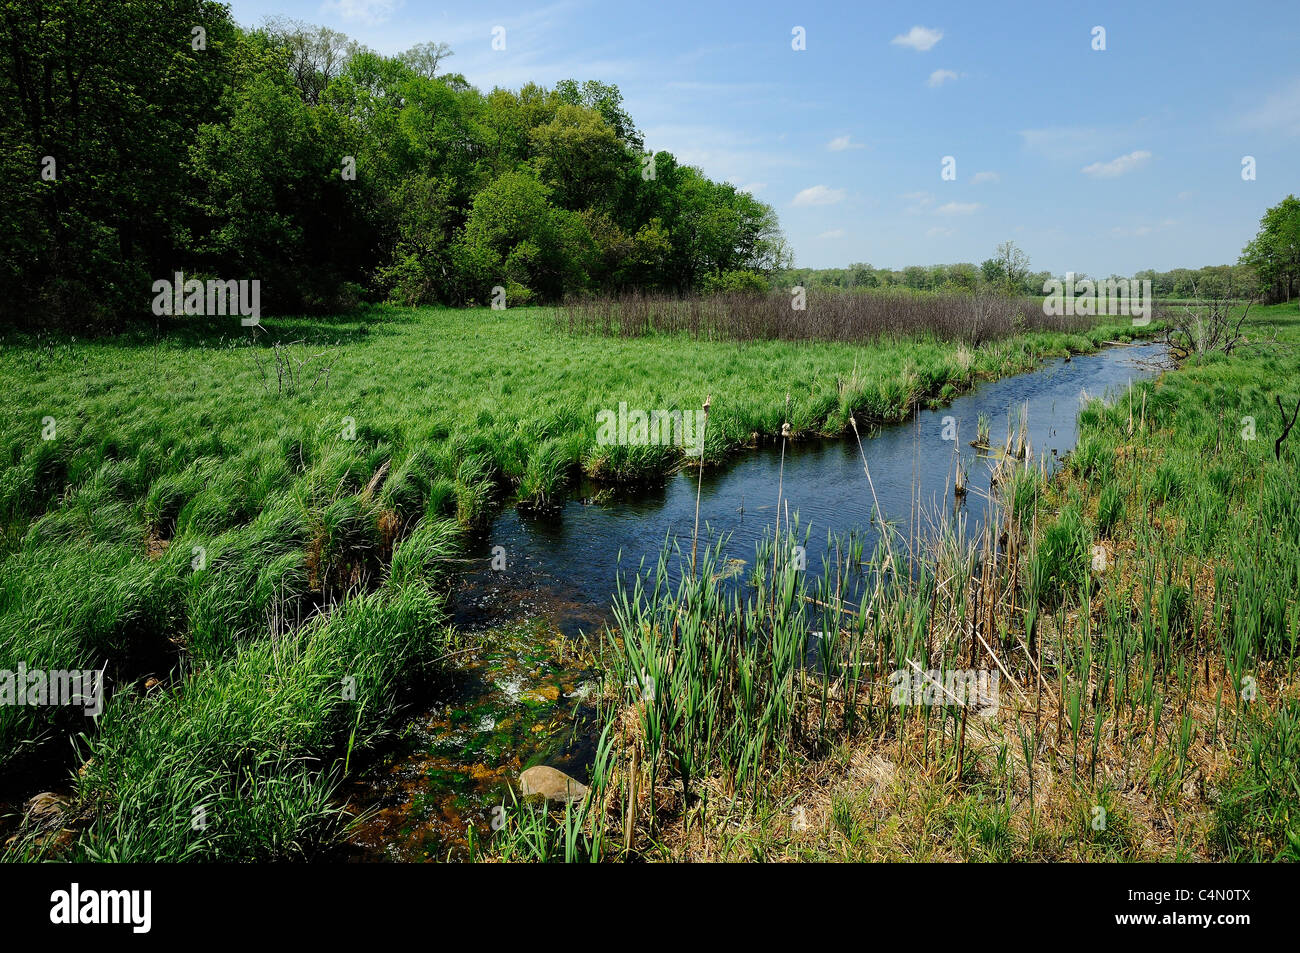 Stream running into glacial bog at Moraine Hills State Park in Northern Illinois, USA. - Stock Image